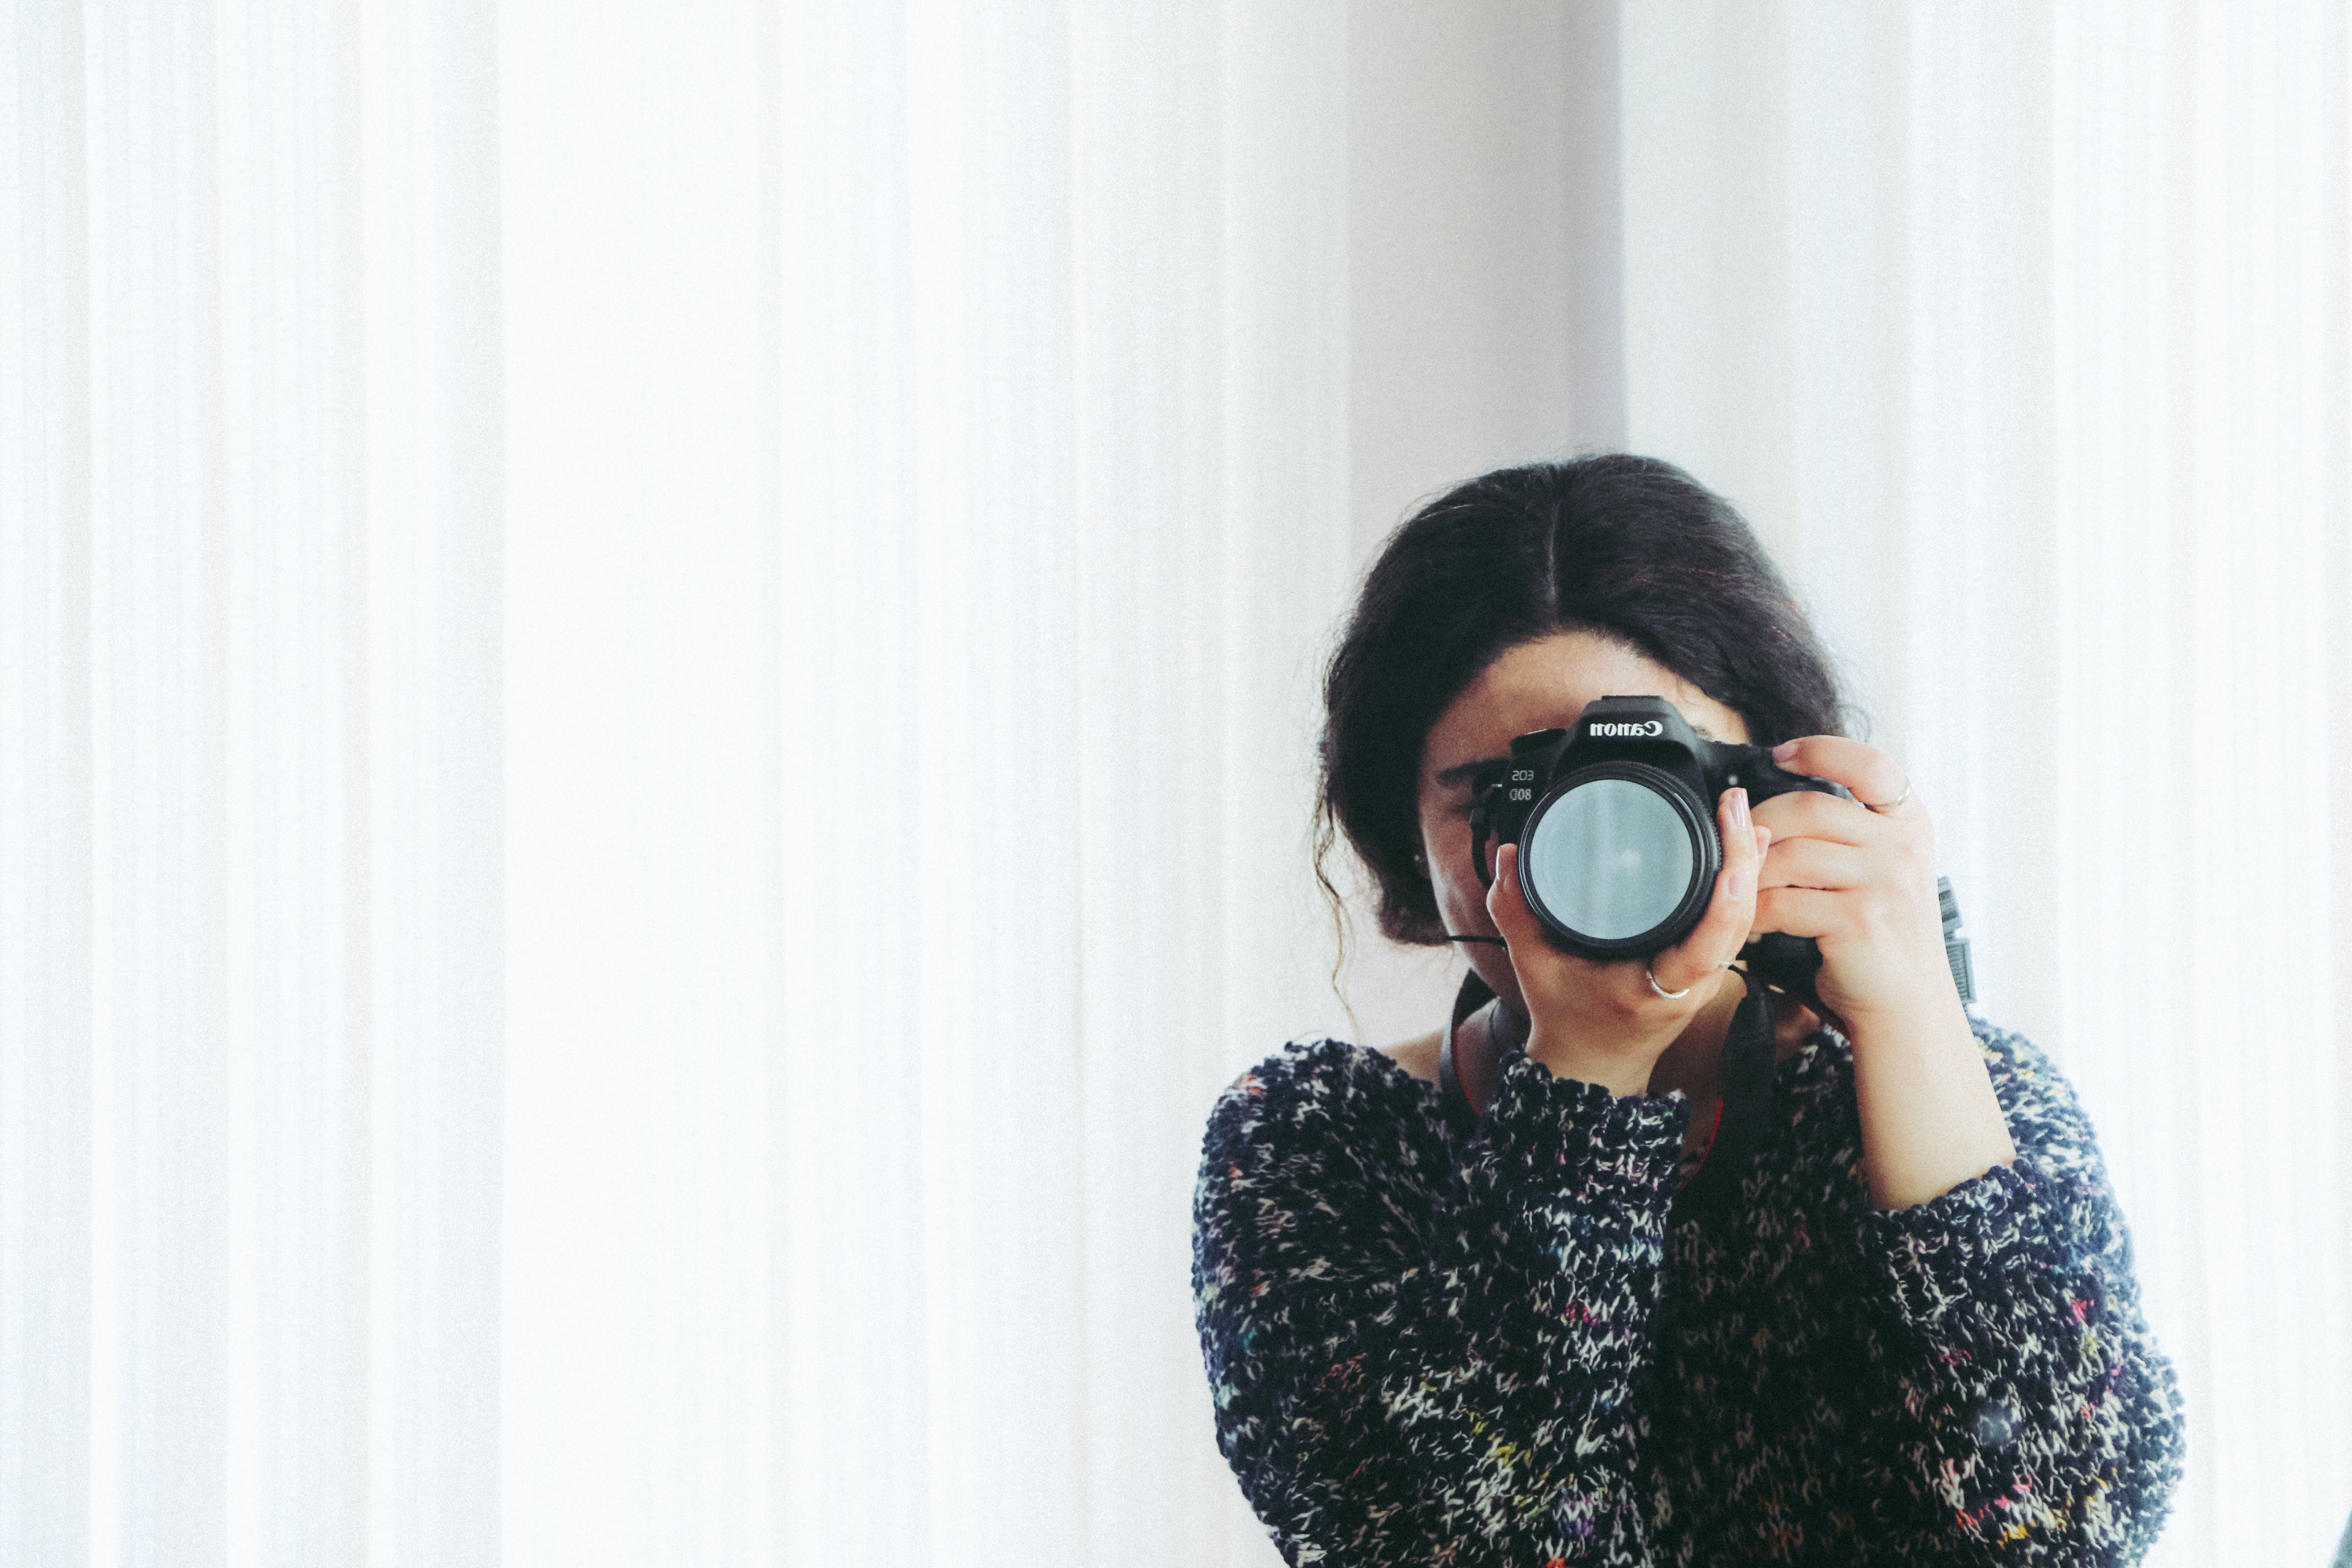 Woman in Black Long-sleeved Shirt Using Camera